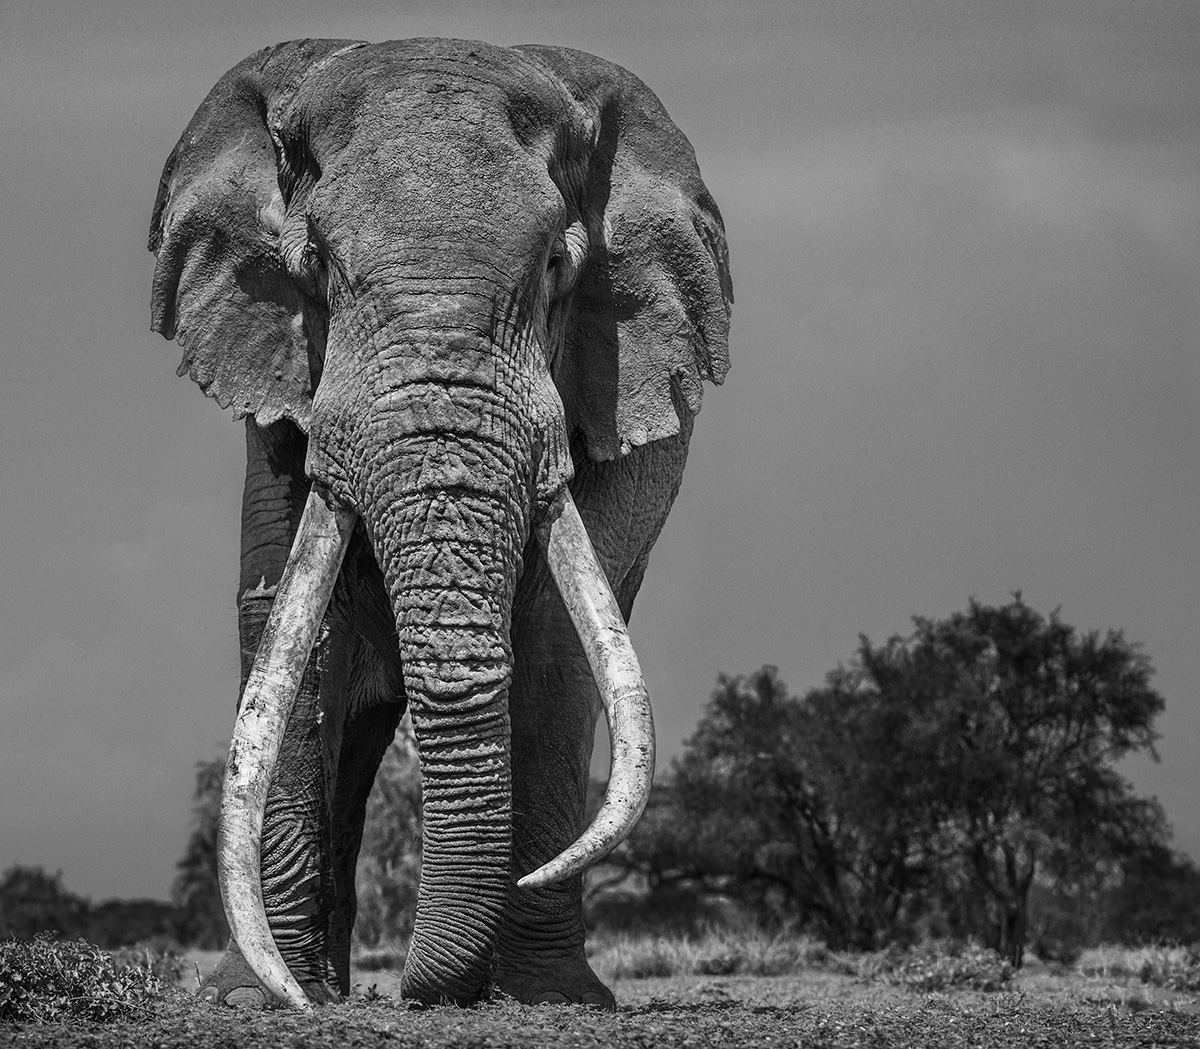 Coloso | Nikon D850 | 1/1250 s | f/8 | 200 mm | ISO 200 | AF-S NIKKOR 200mm f/2G ED VR II | ©David Yarrow